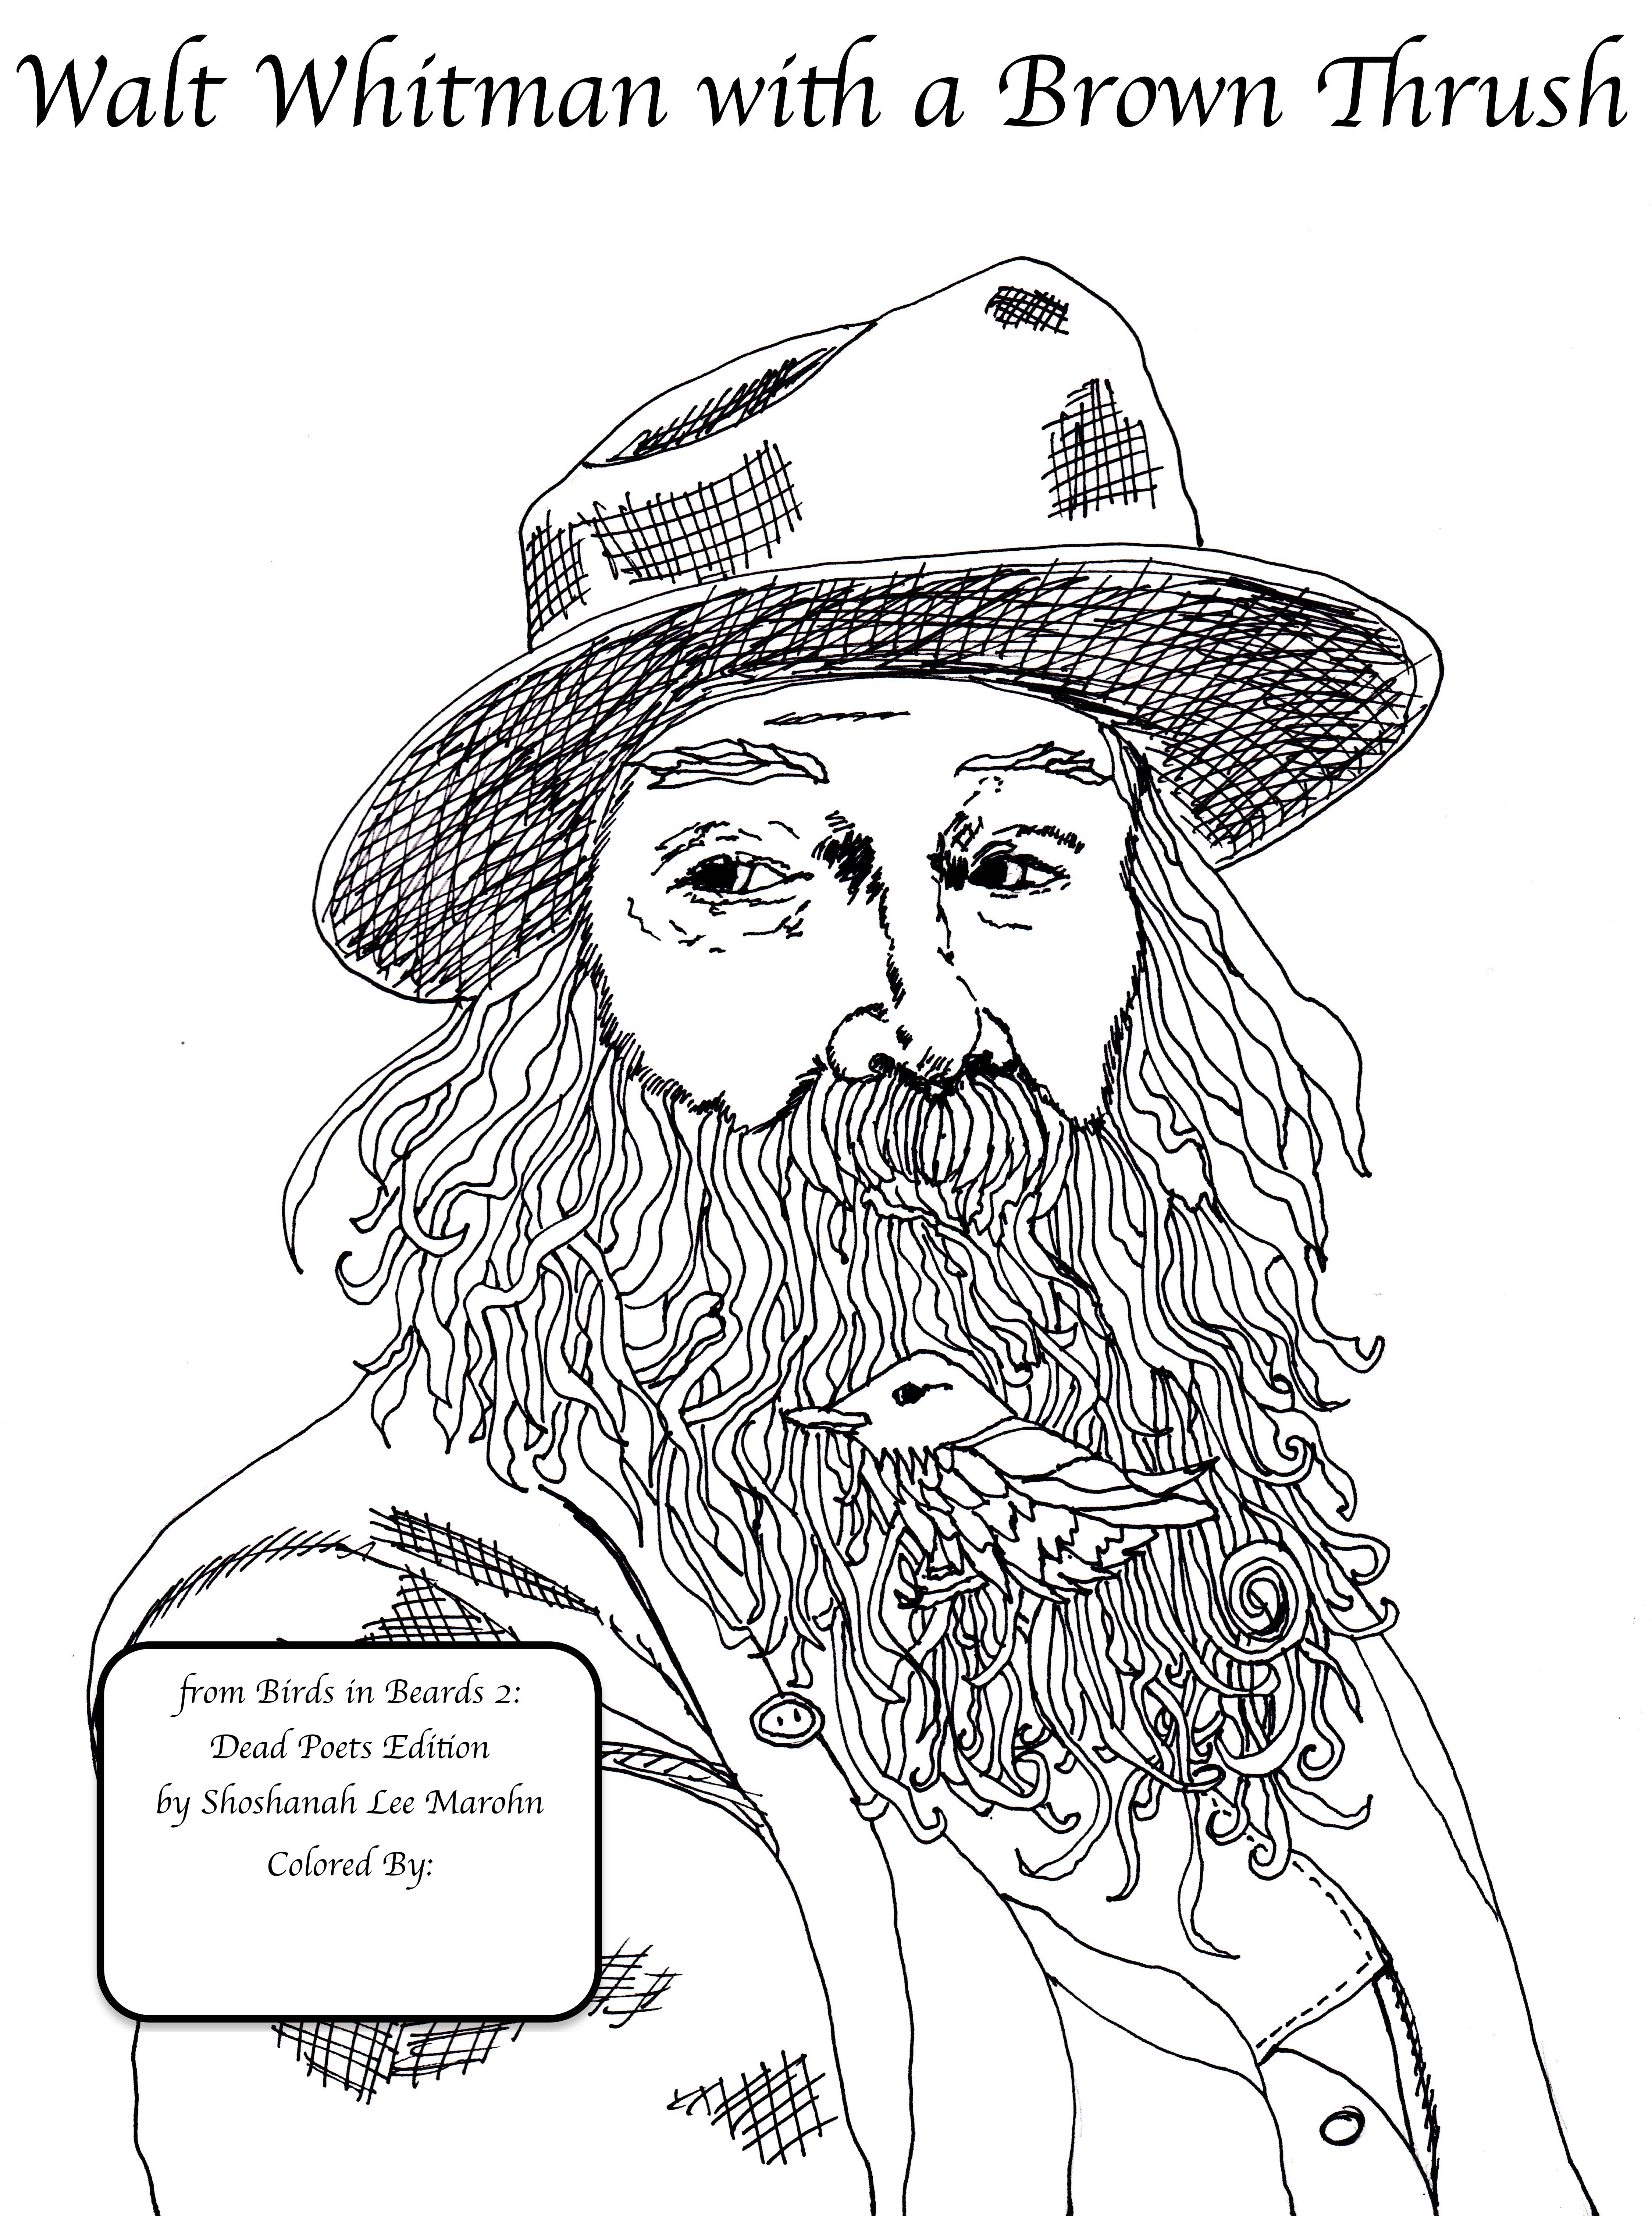 Color Walt Whitman with a Brown Thrush